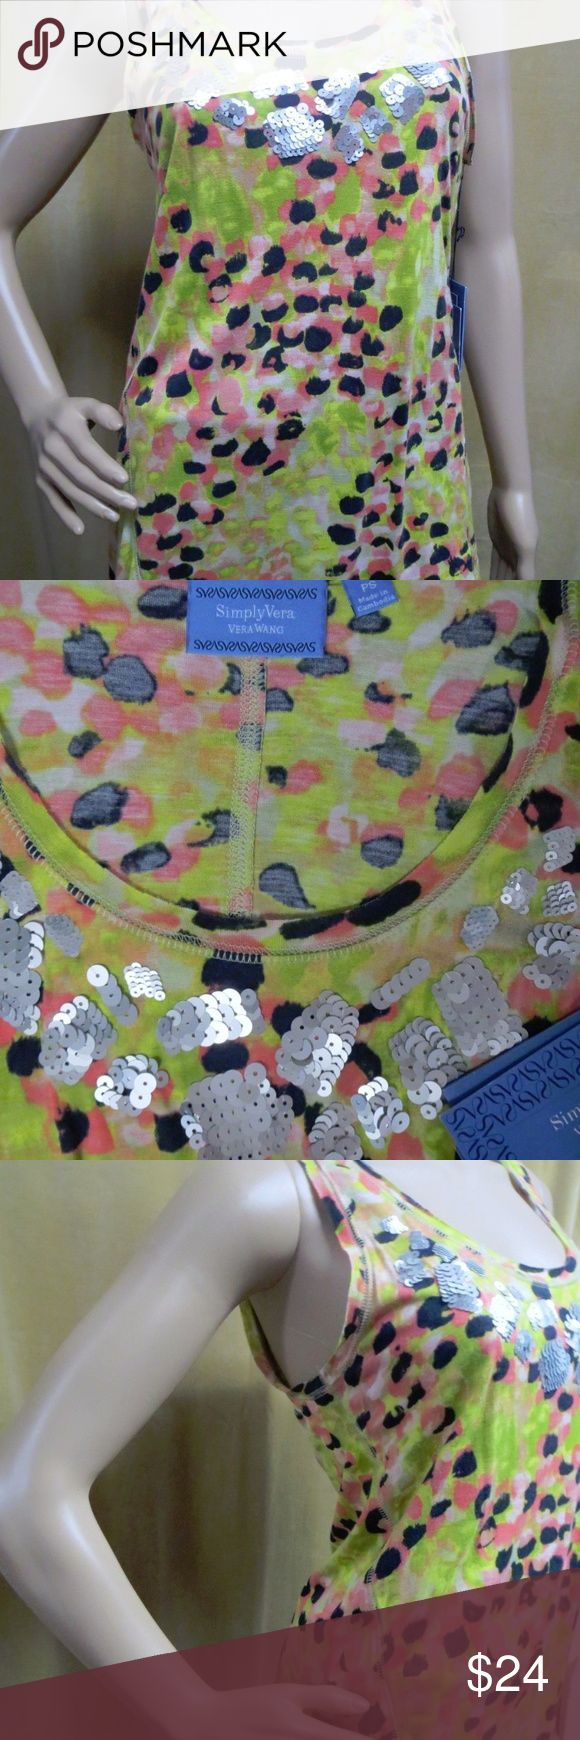 "Simply Vera Wang Sequin Dot Tank Top New Petite NWT New Retail $44.00 Pullover Scoop neckline Sleeveless Allover mig dot printed watercolor Silver sequin applique bodice Straight hem, lightweight, silky soft touch 100% rayon Hand wash Size PXS:     Chest 15"" across front and length from shoulder to hem 24"". Size PS :     Chest 15.5"" across front and length from shoulder to hem 25"". Simply Vera Vera Wang Tops Blouses"